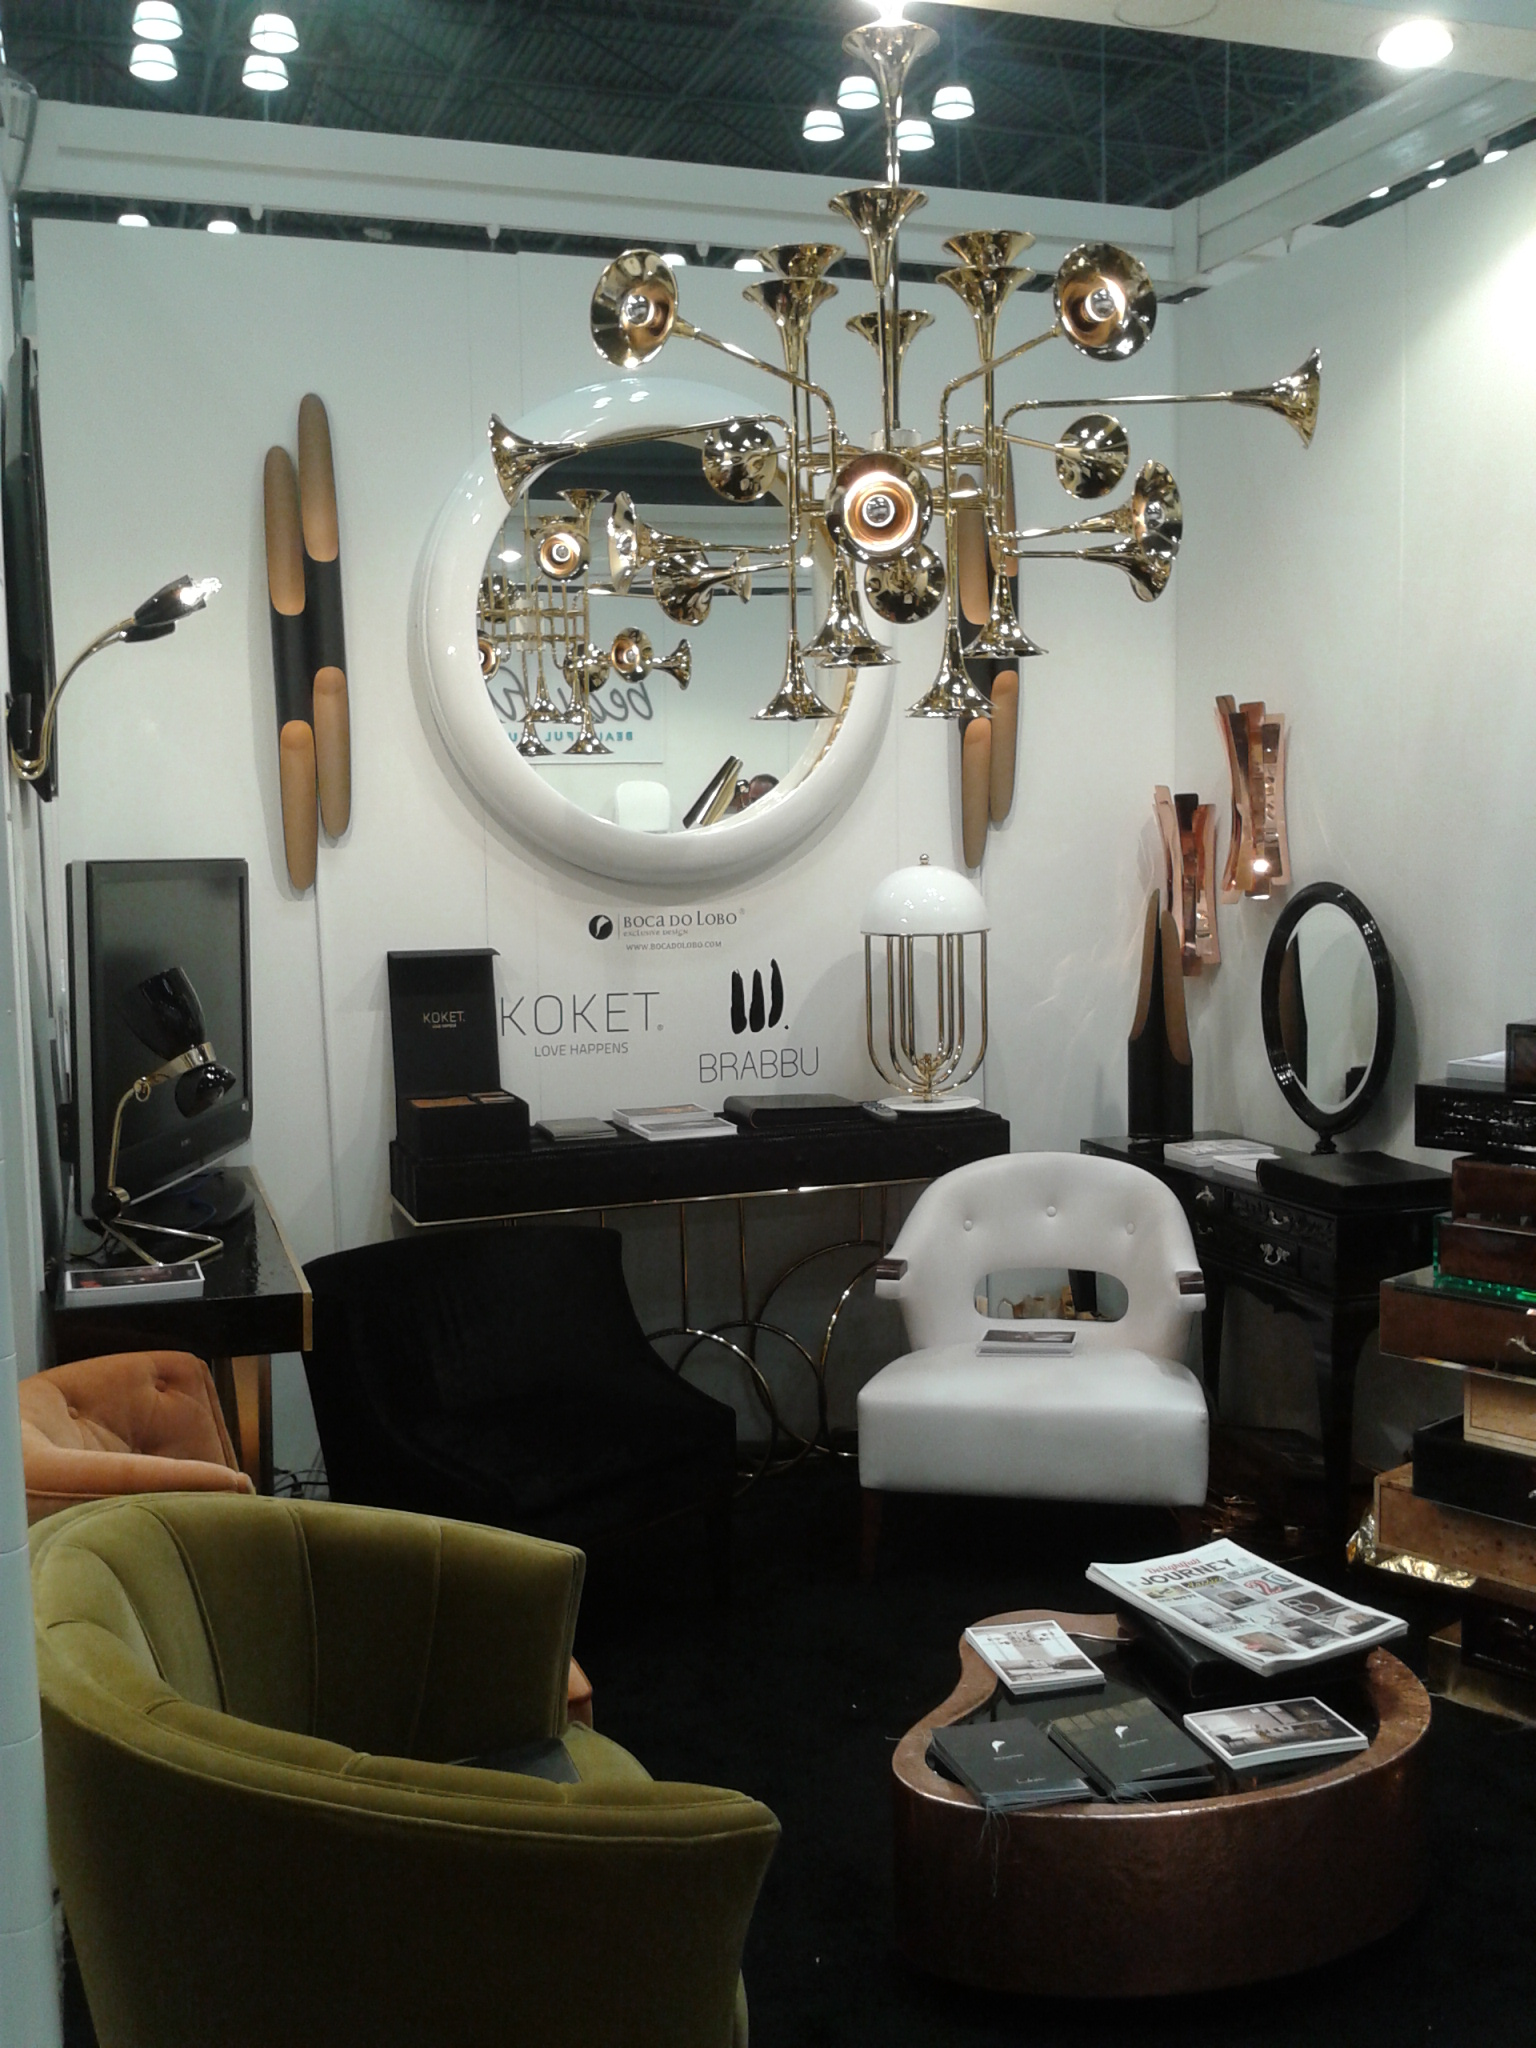 The Best at Boutique Design New York The Best at Boutique Design New York The Best at Boutique Design New York